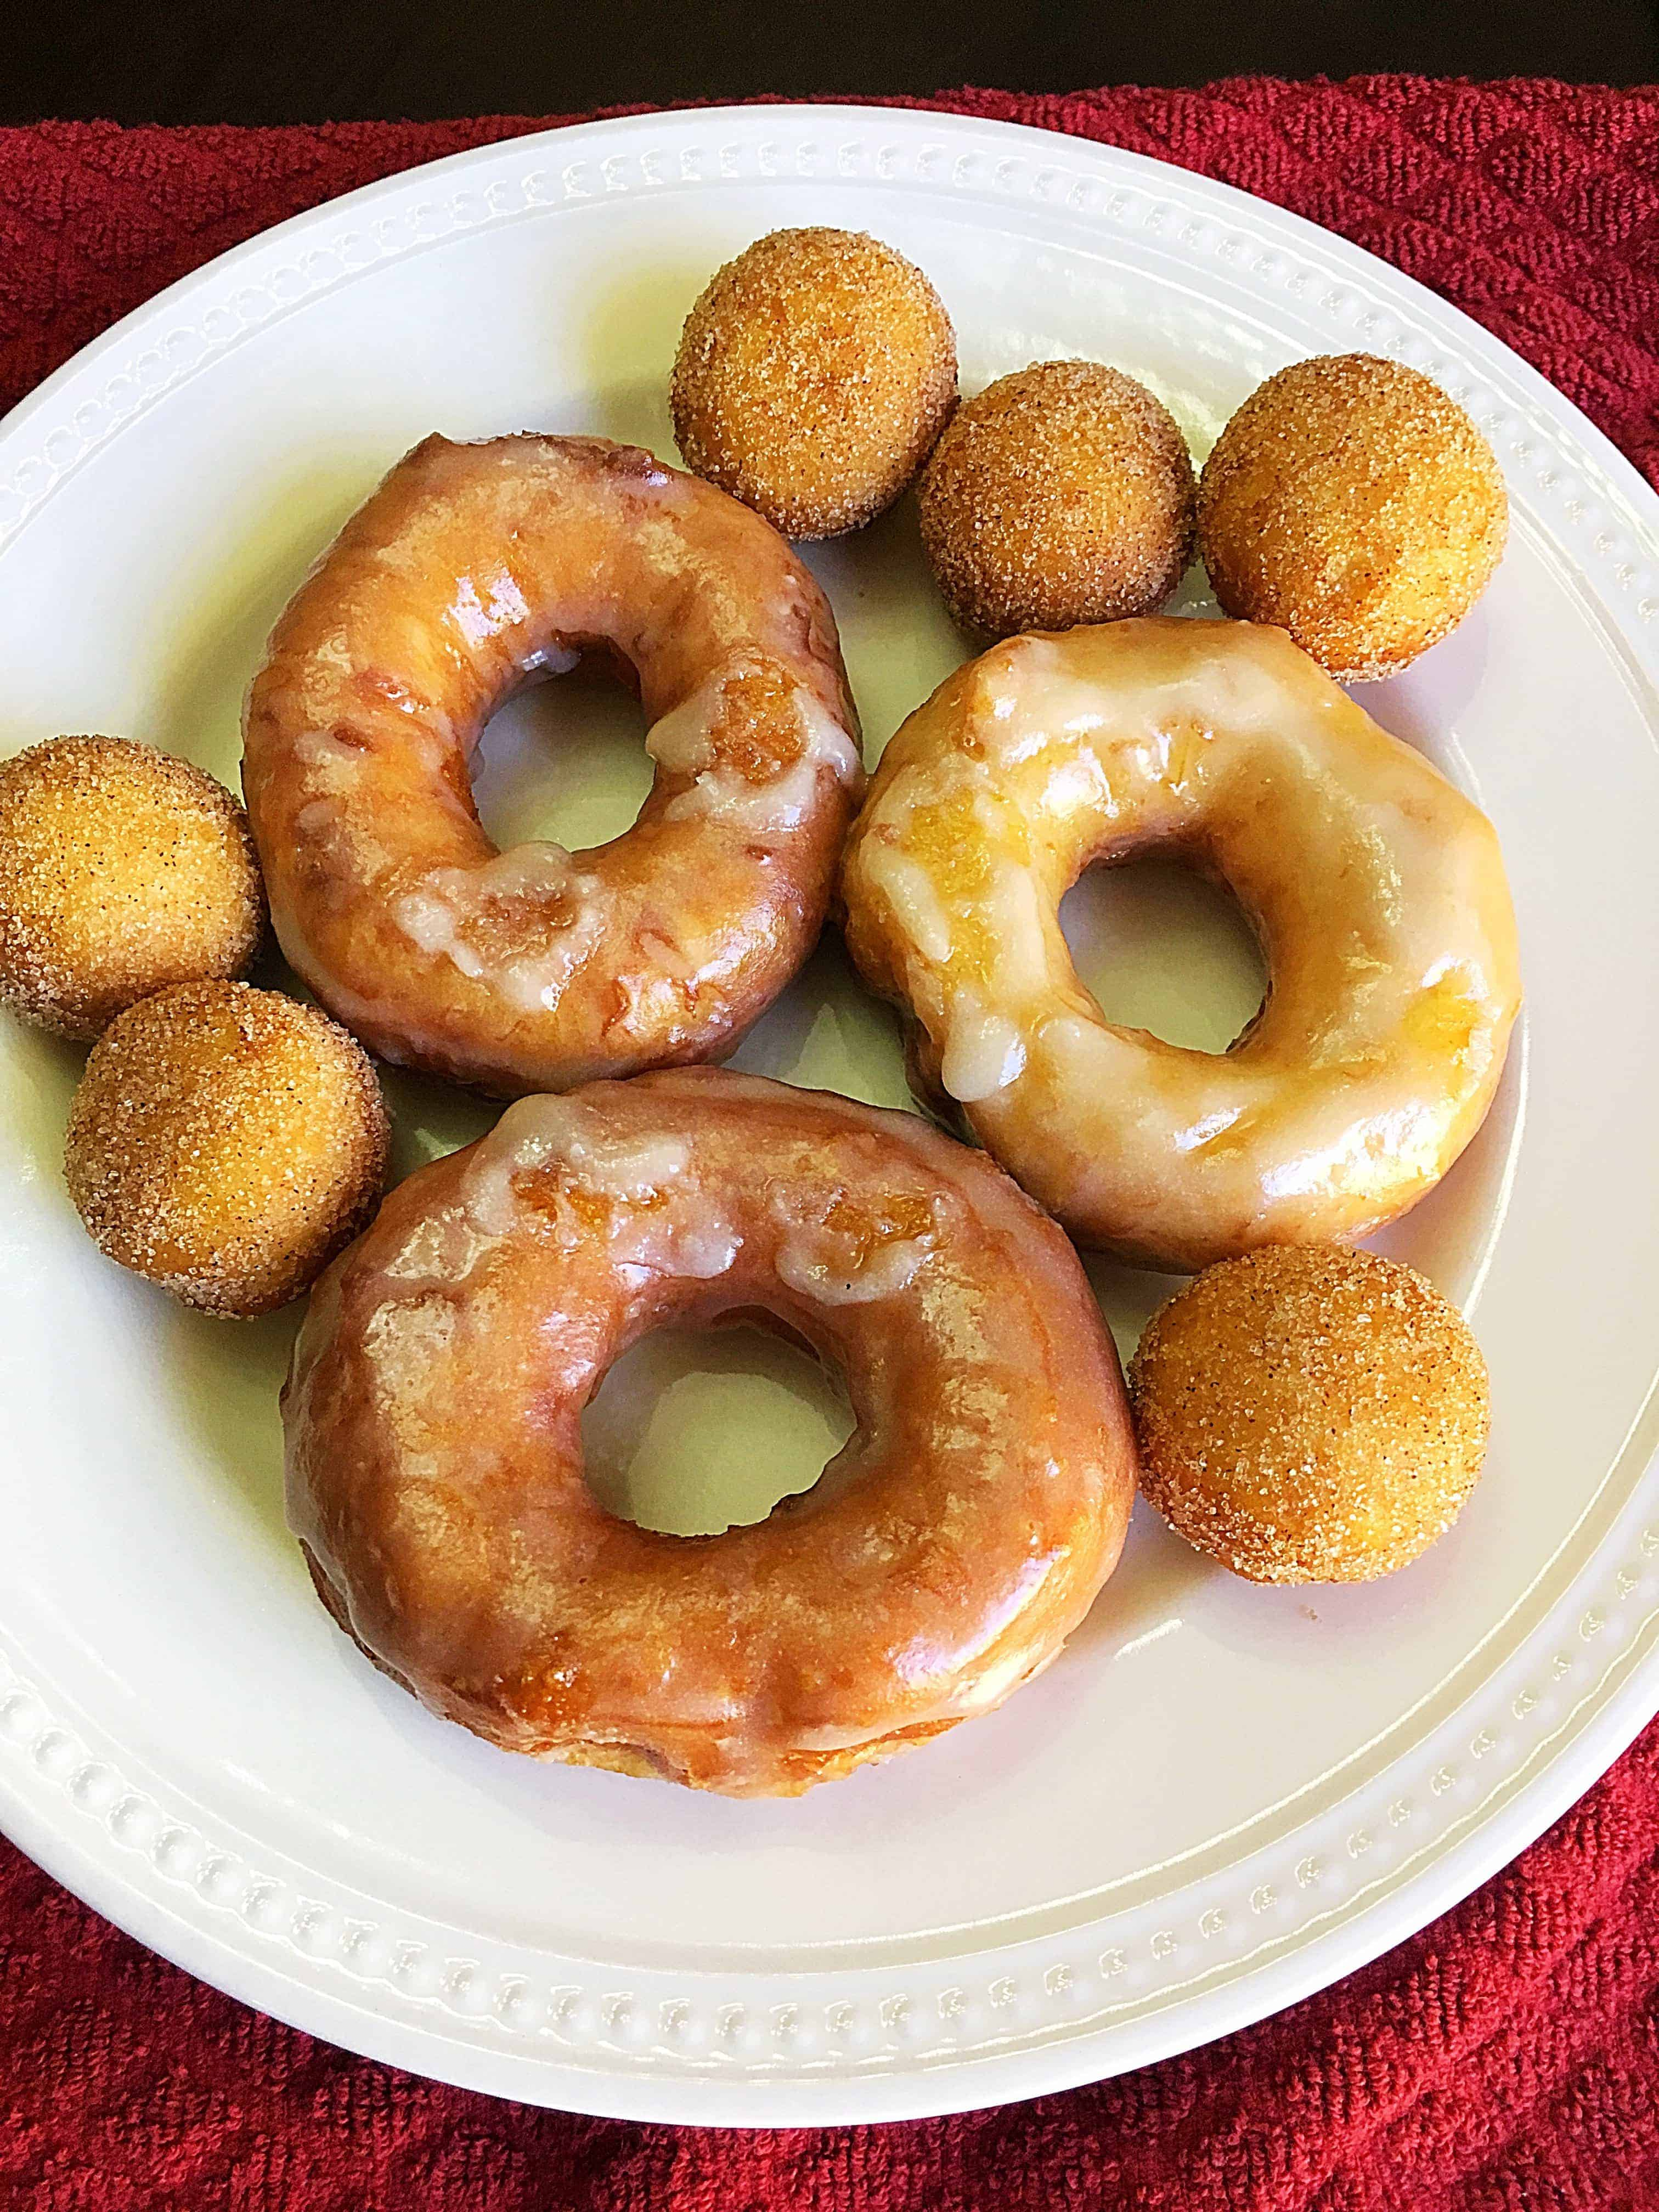 Mouthwatering Canned Biscuit Donuts- These easy-to-make glazed doughnuts are made from canned biscuits and are absolutely mouthwatering! Trust me, you won't be able to eat just one of these yummy canned biscuit donuts and they only take just a few minutes to make! #cannedbiscuitdonuts #biscuitdonuts #donuts #breakfast